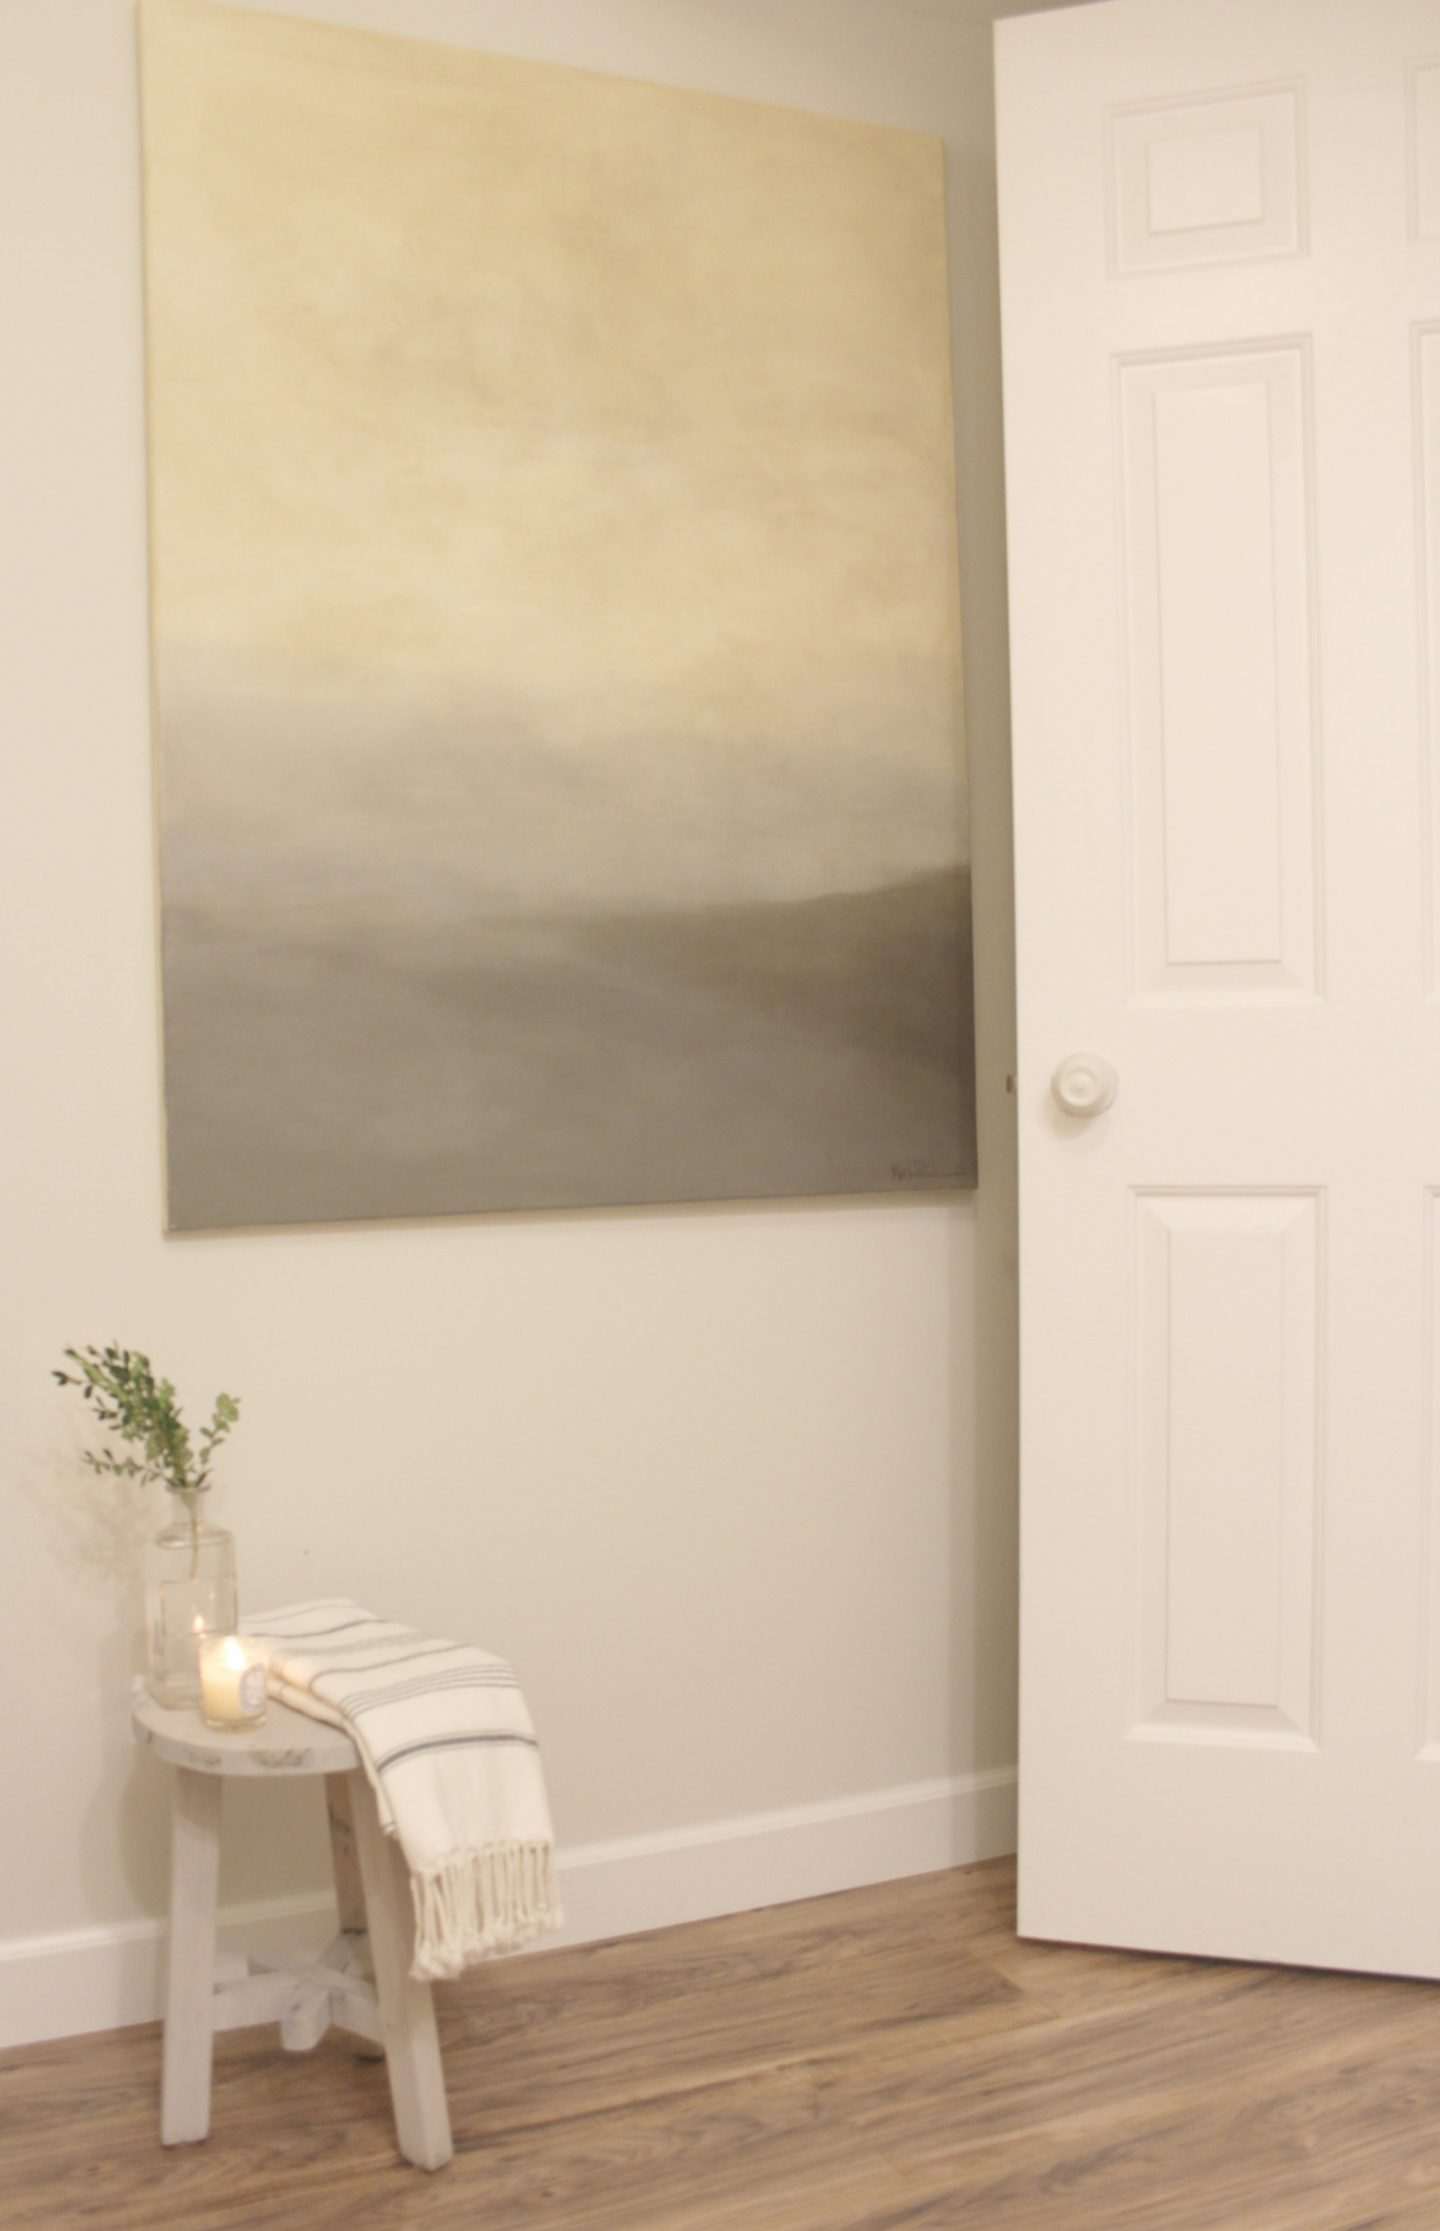 Classic Gray by Benjamin Moore paint color on wall with abstract landscape. #hellolovelystudio #classicgray #benjaminmoore #paintcolors #benjaminmooreclassicgray